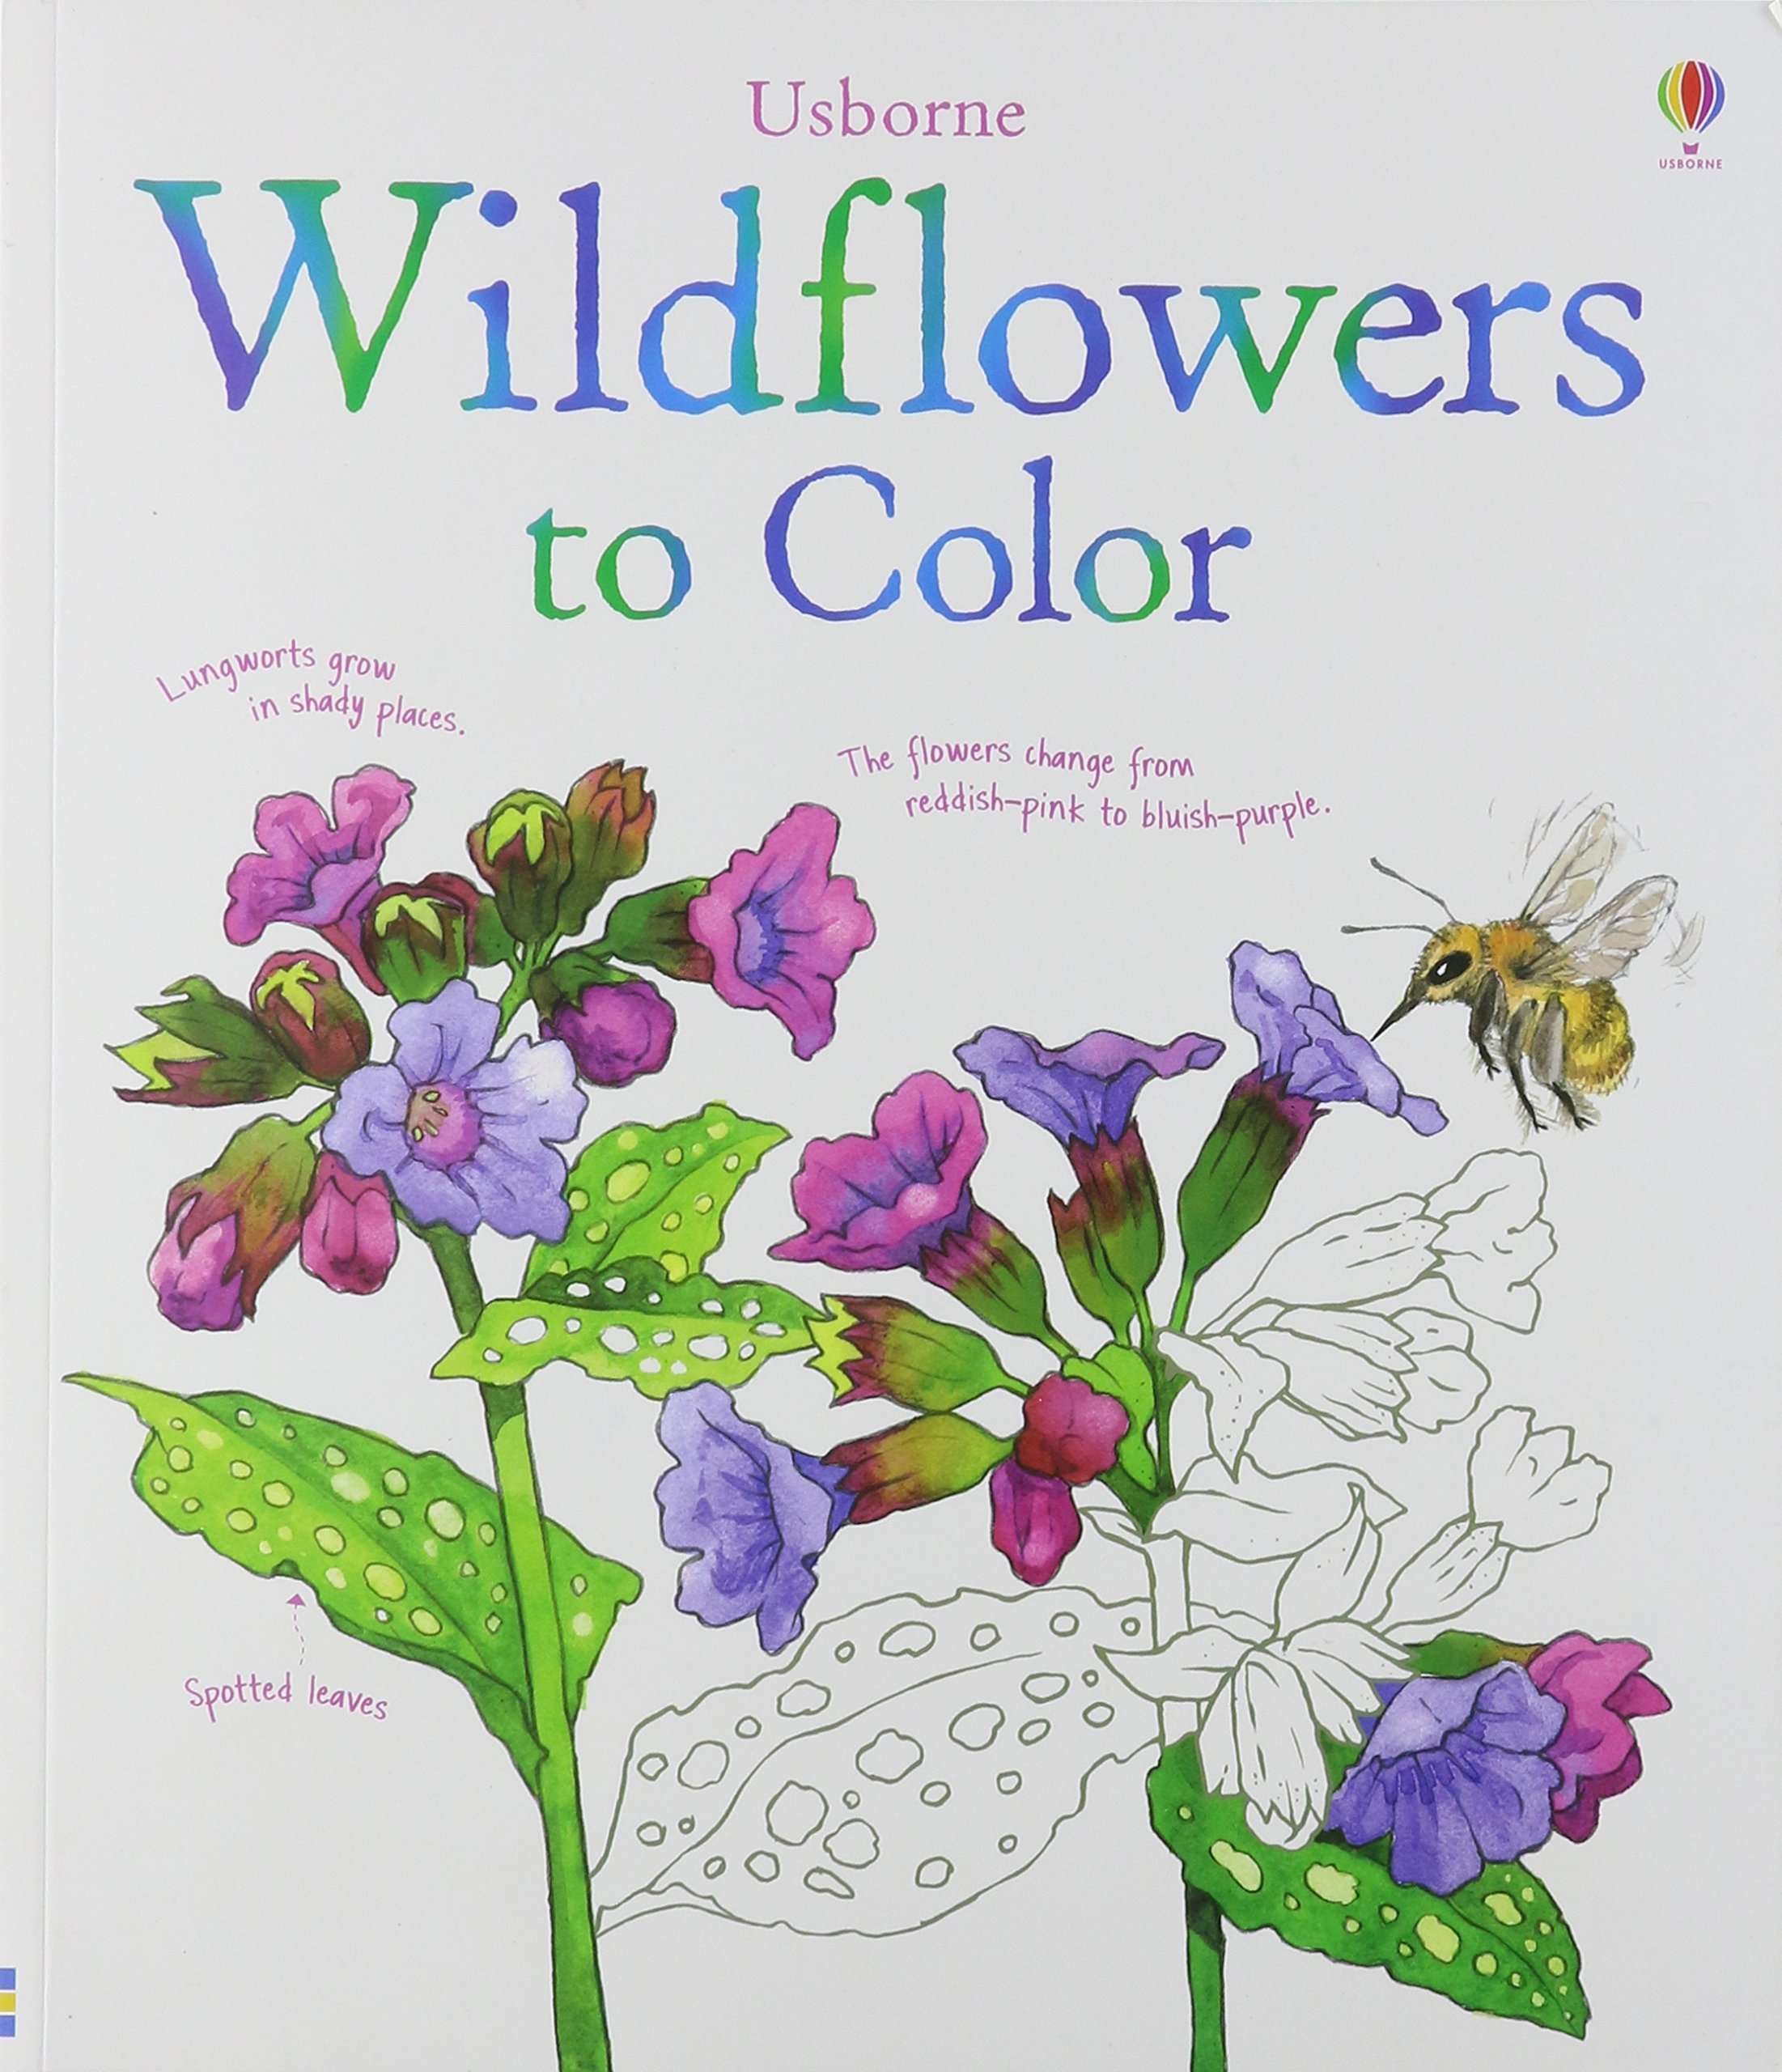 wildflowers to color susan meredith jenny cooper nelupa hussain